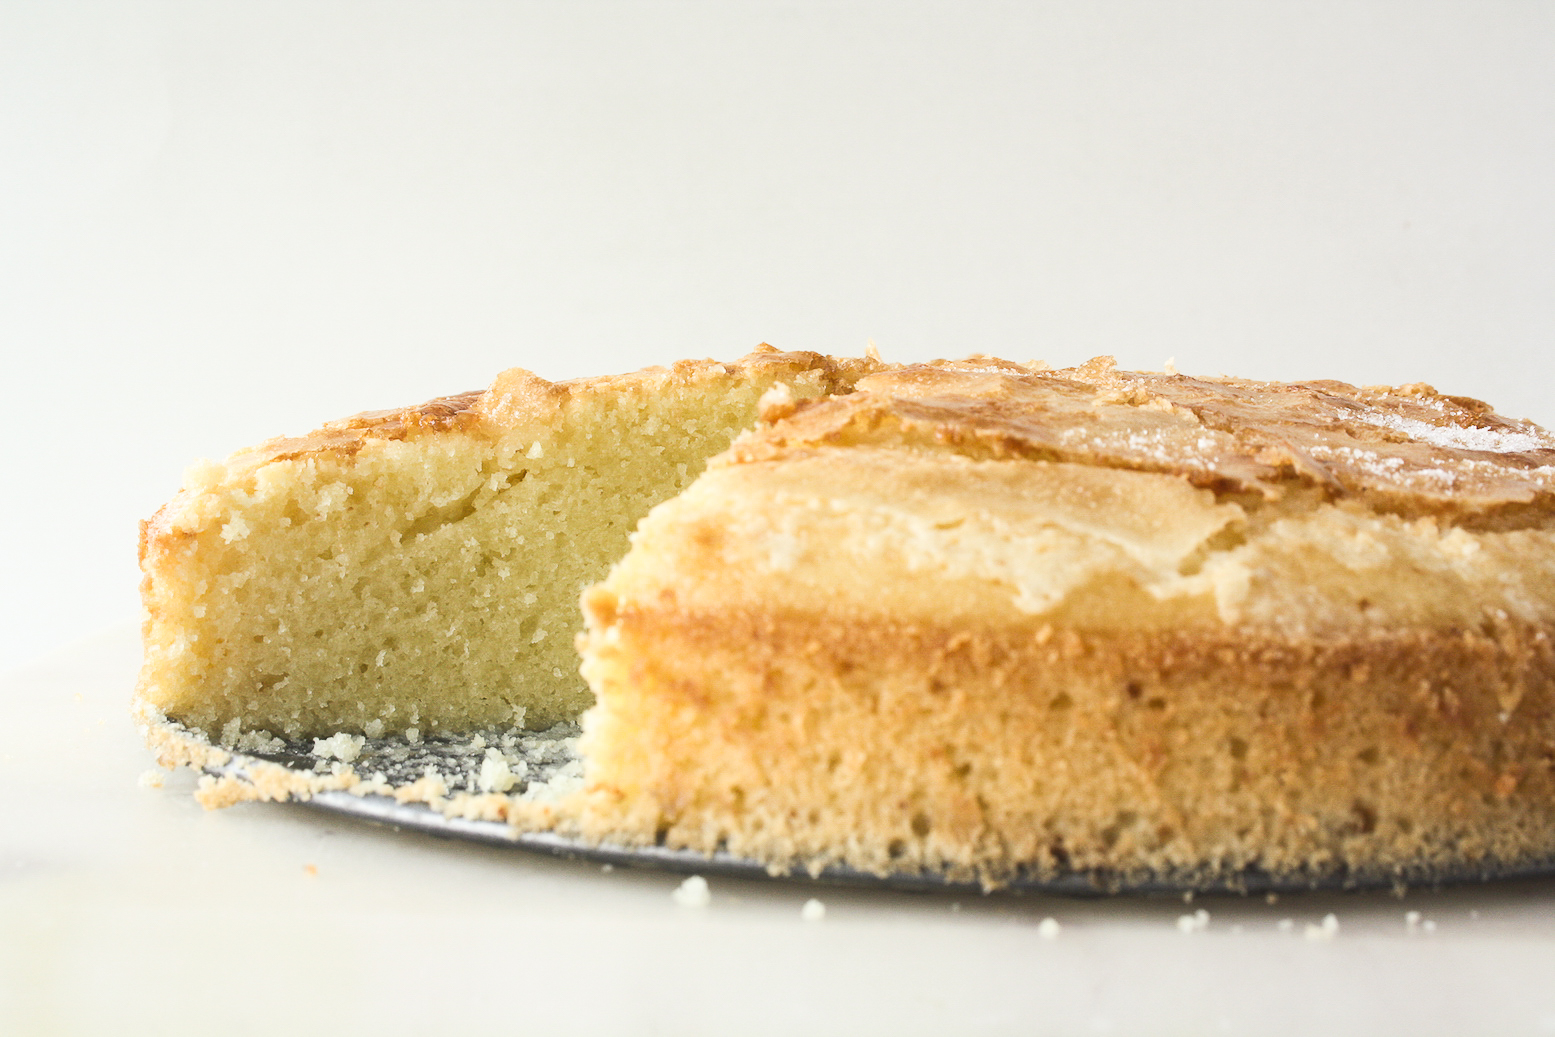 Super soft and moist olive oil with a hint of lemon!